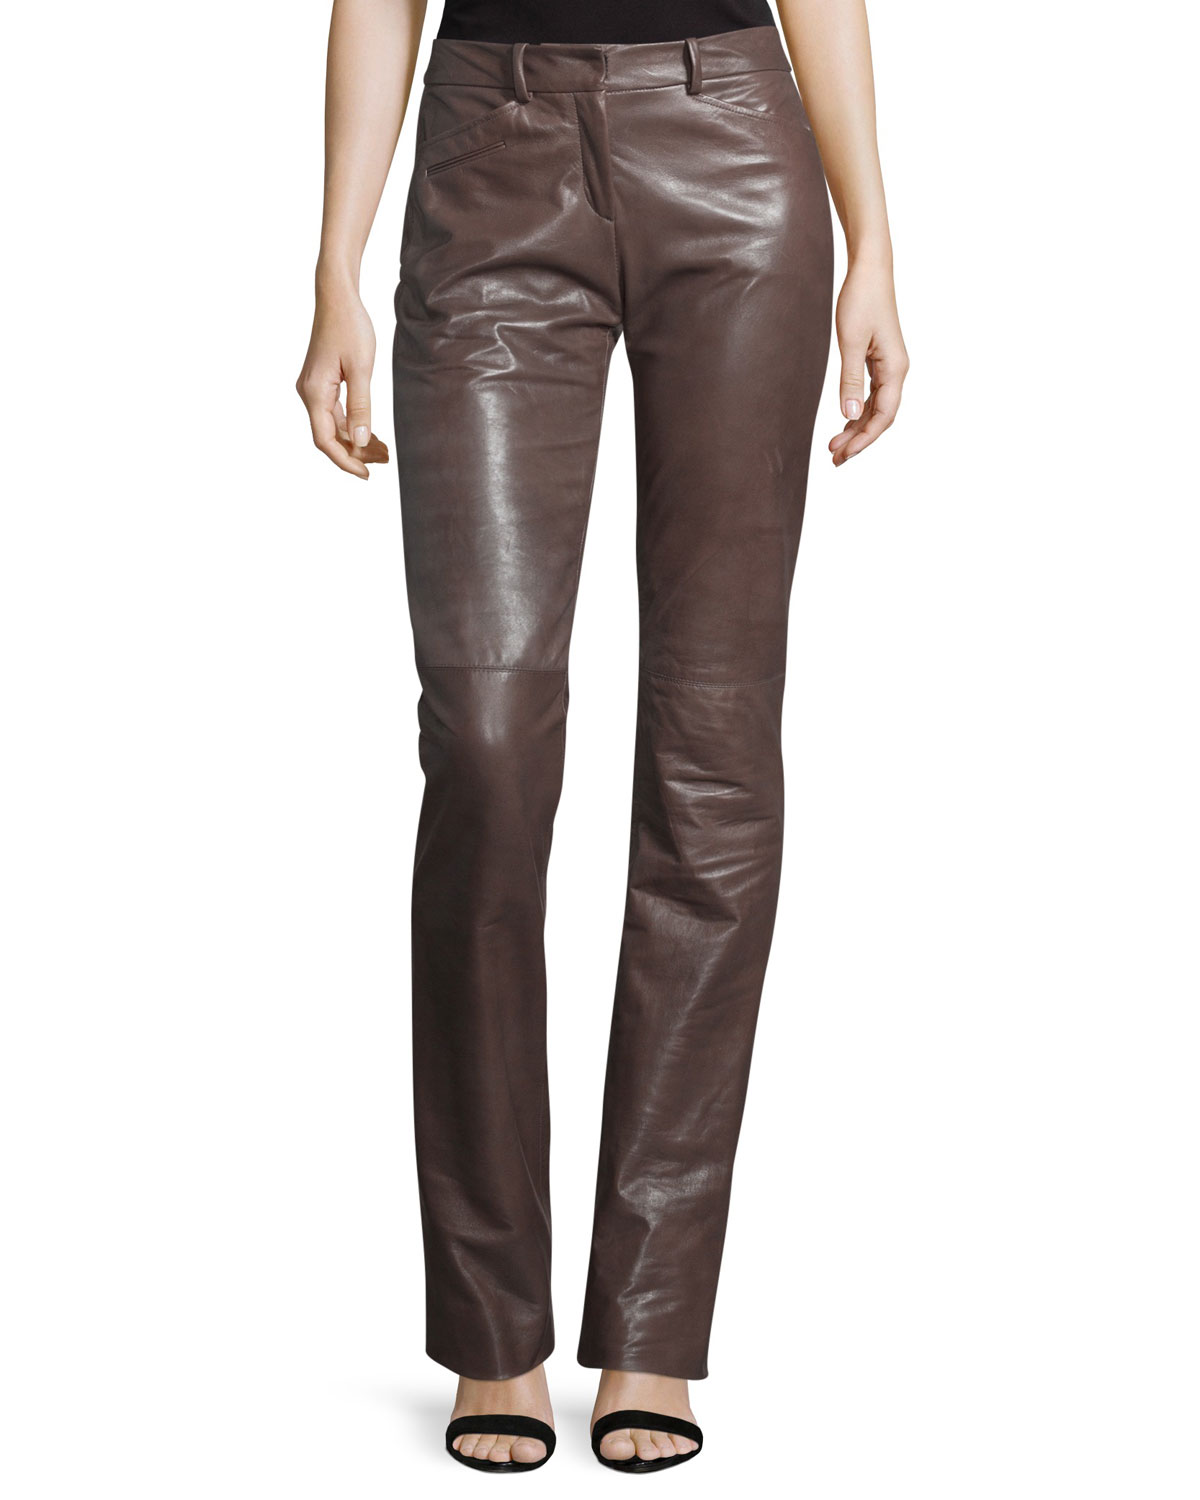 Stunning Leather Pants For Women Leatherexotica